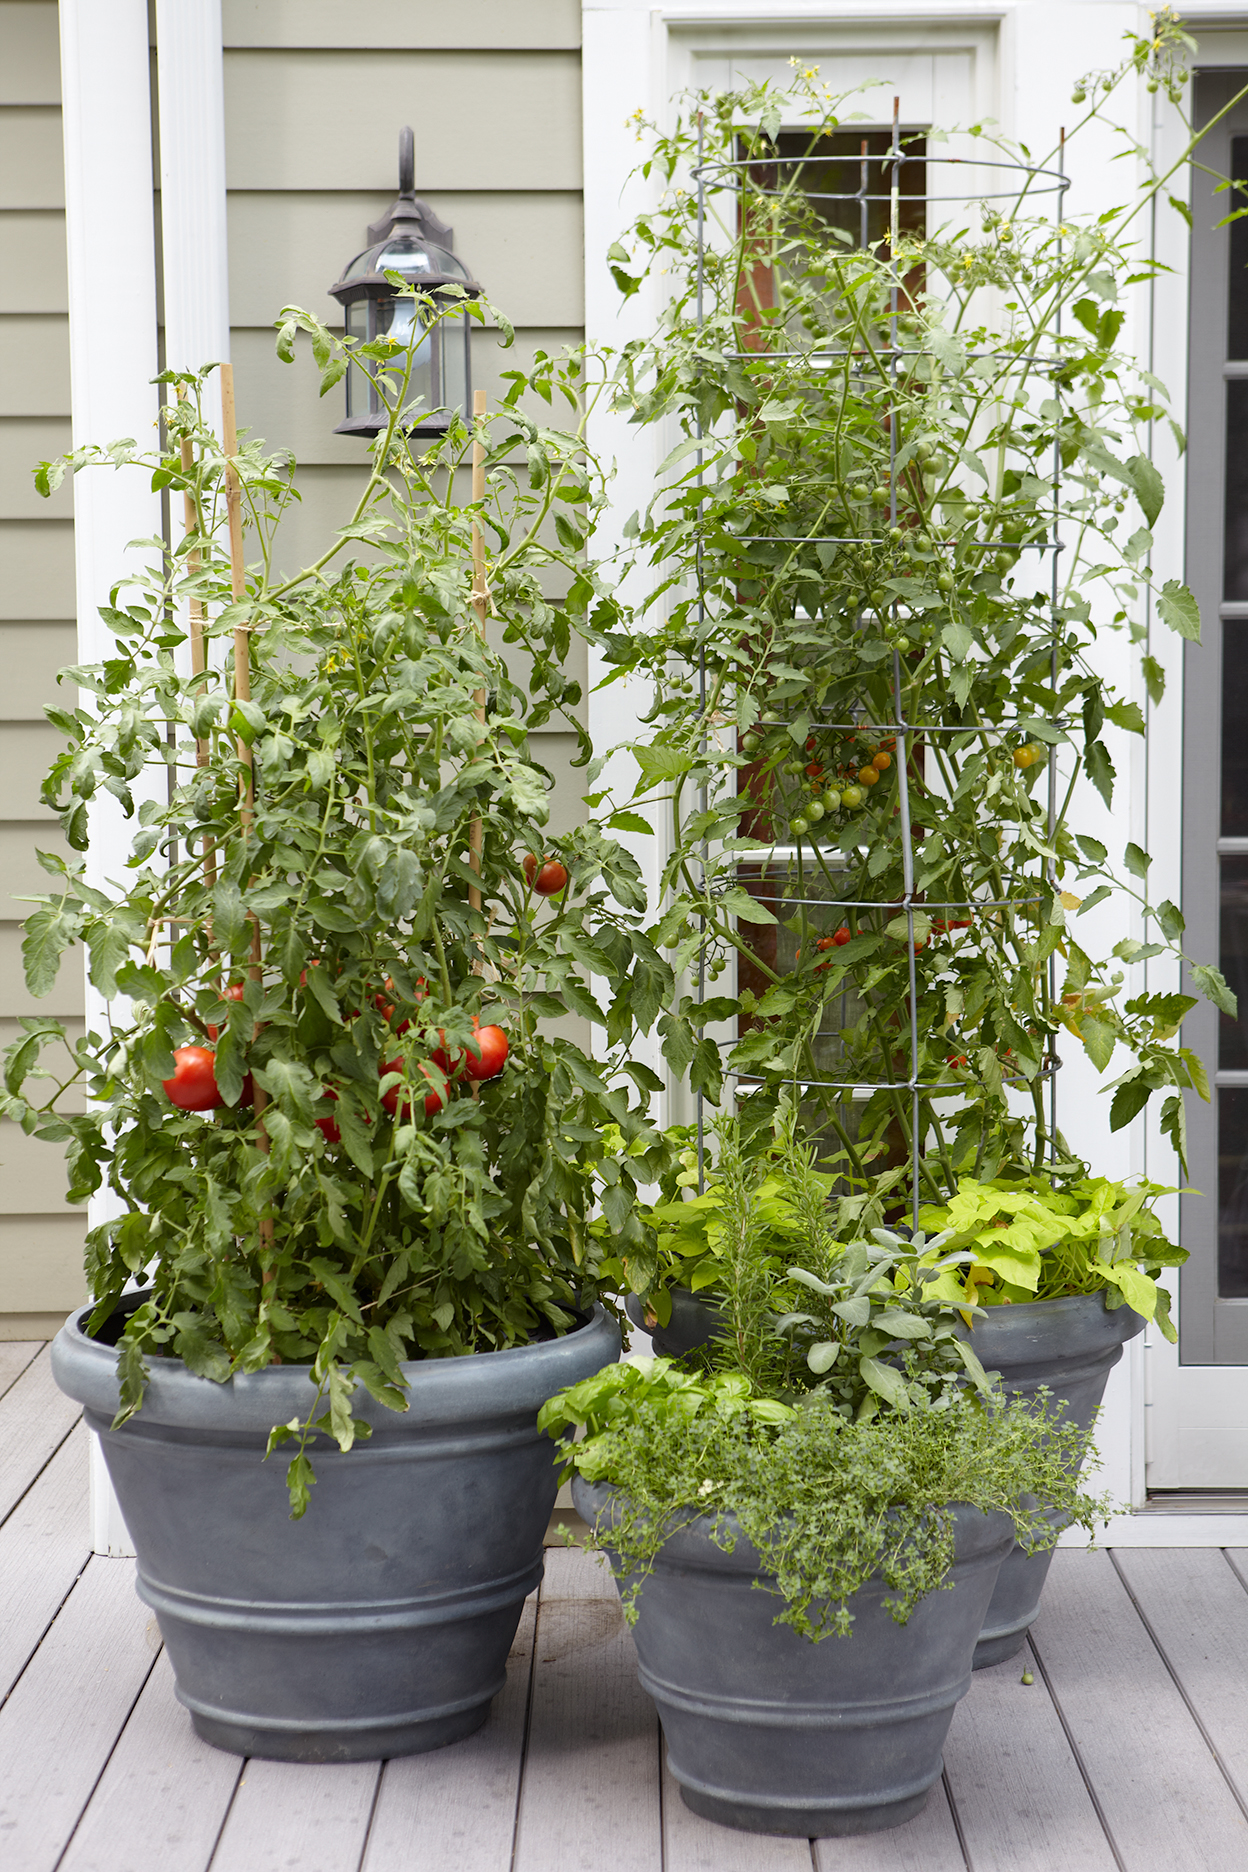 oversized pots with tomato plants